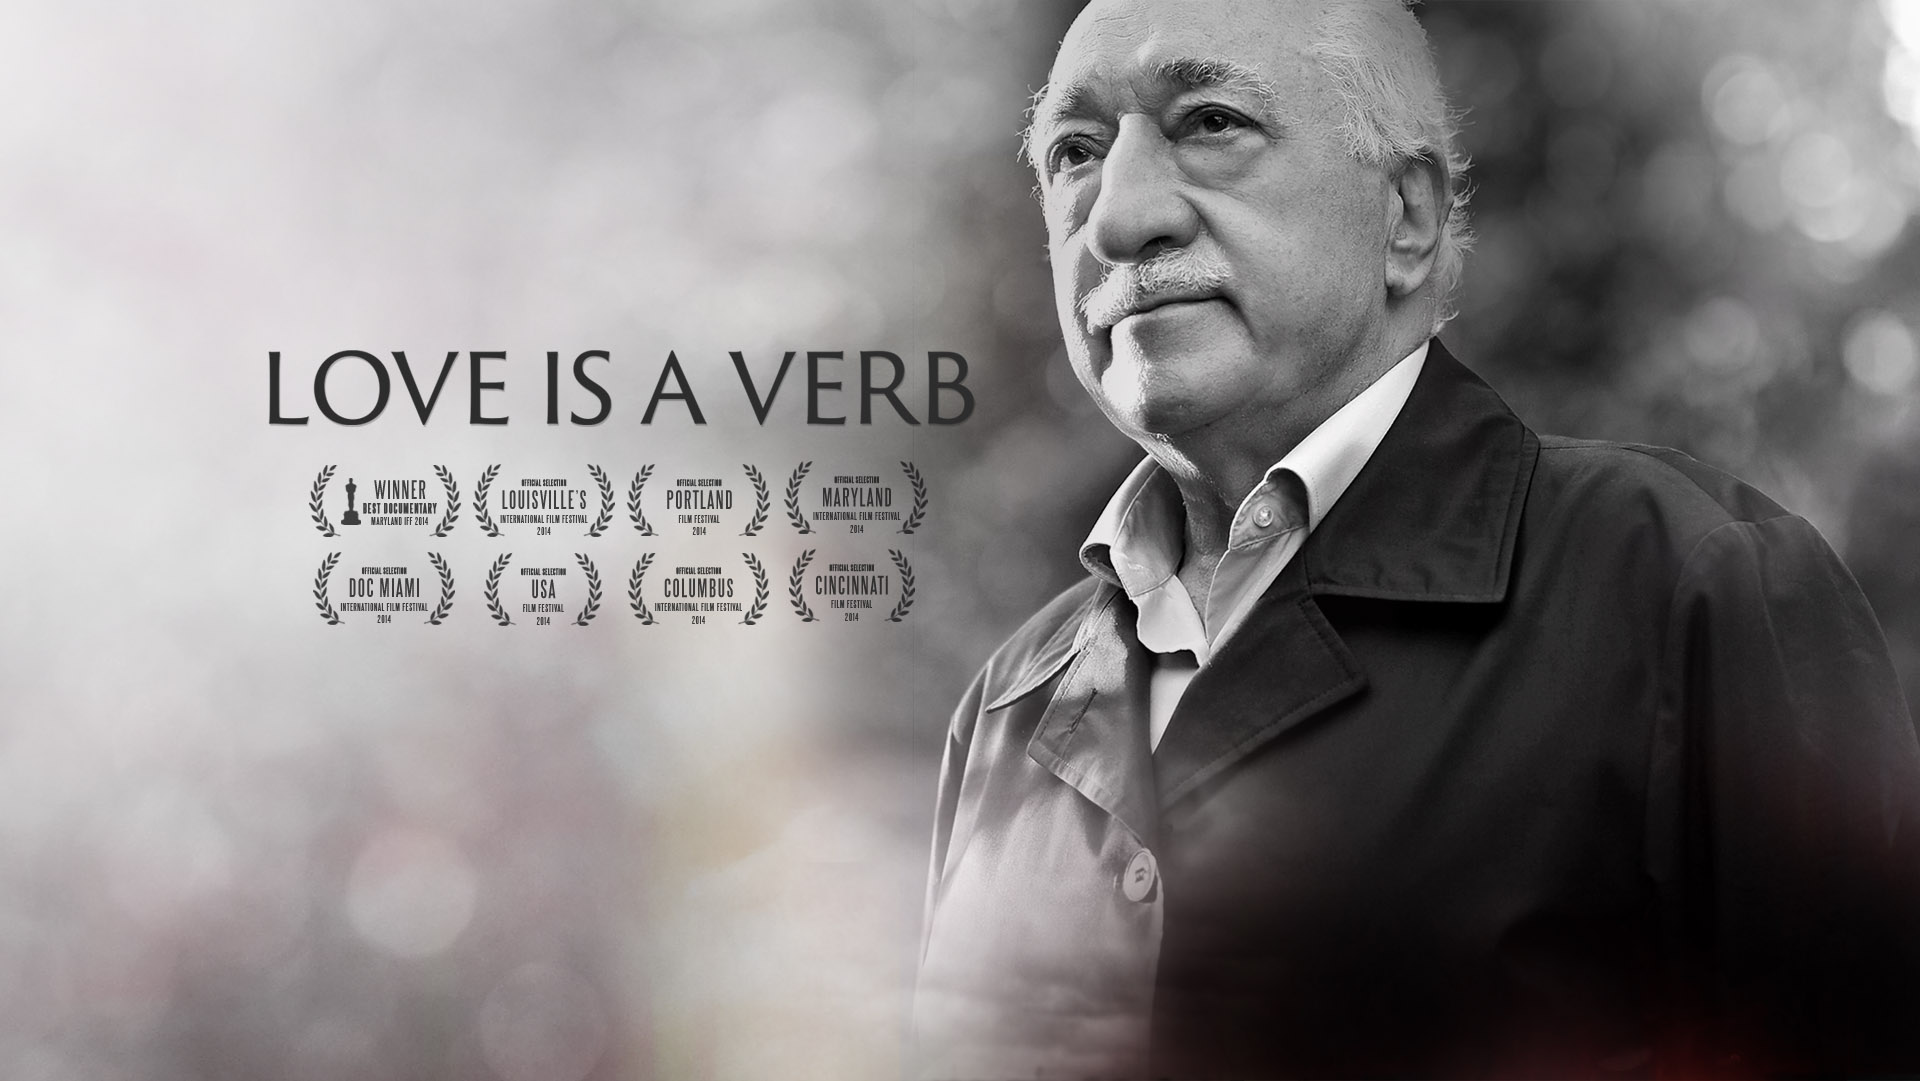 Love is a verb posterx